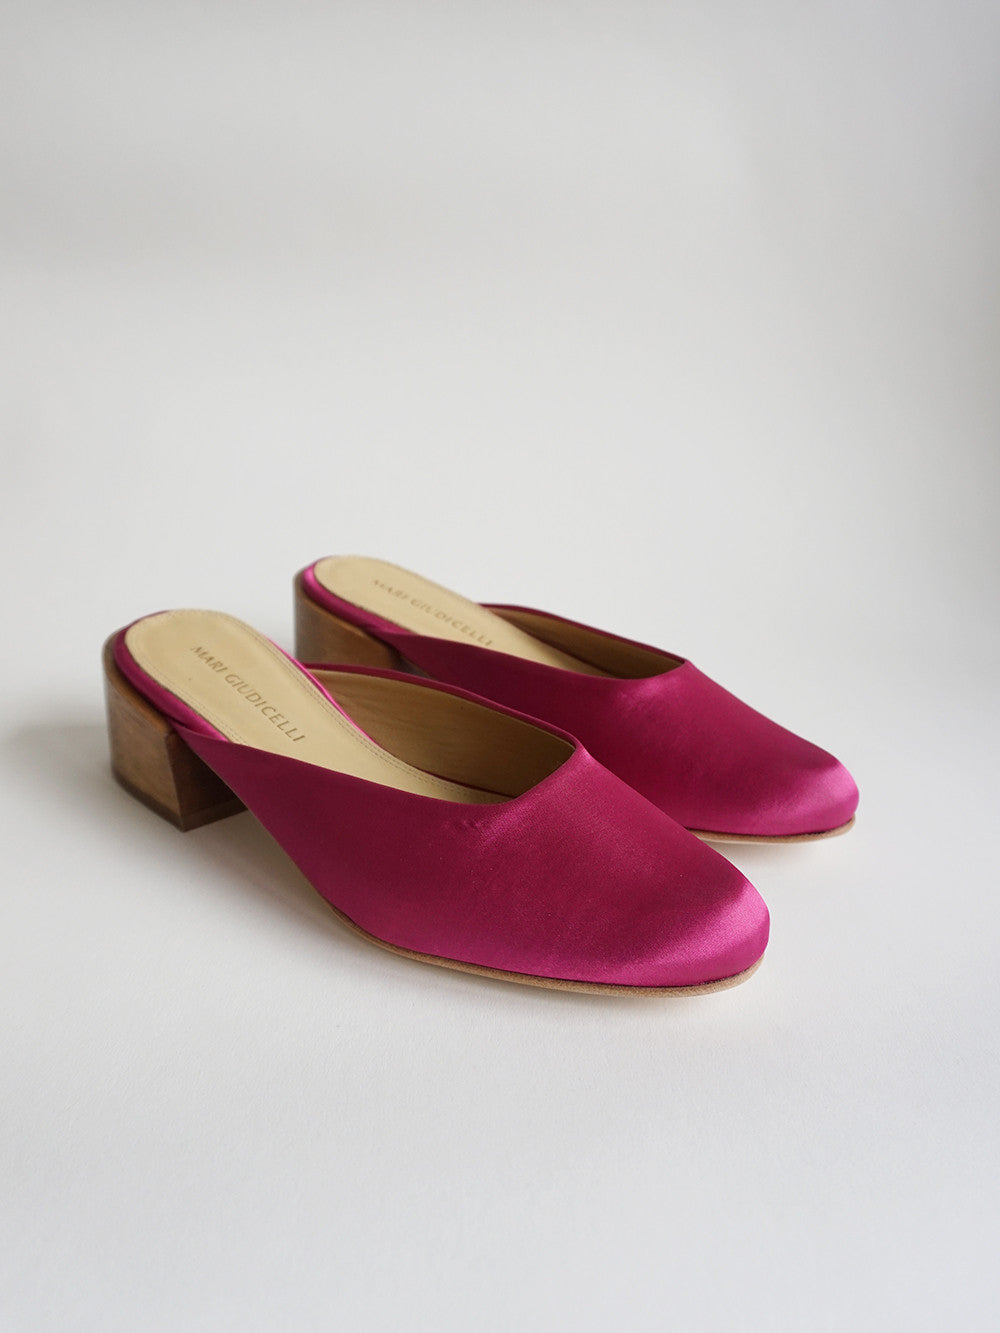 Leblon Mule in Fucsia Satin